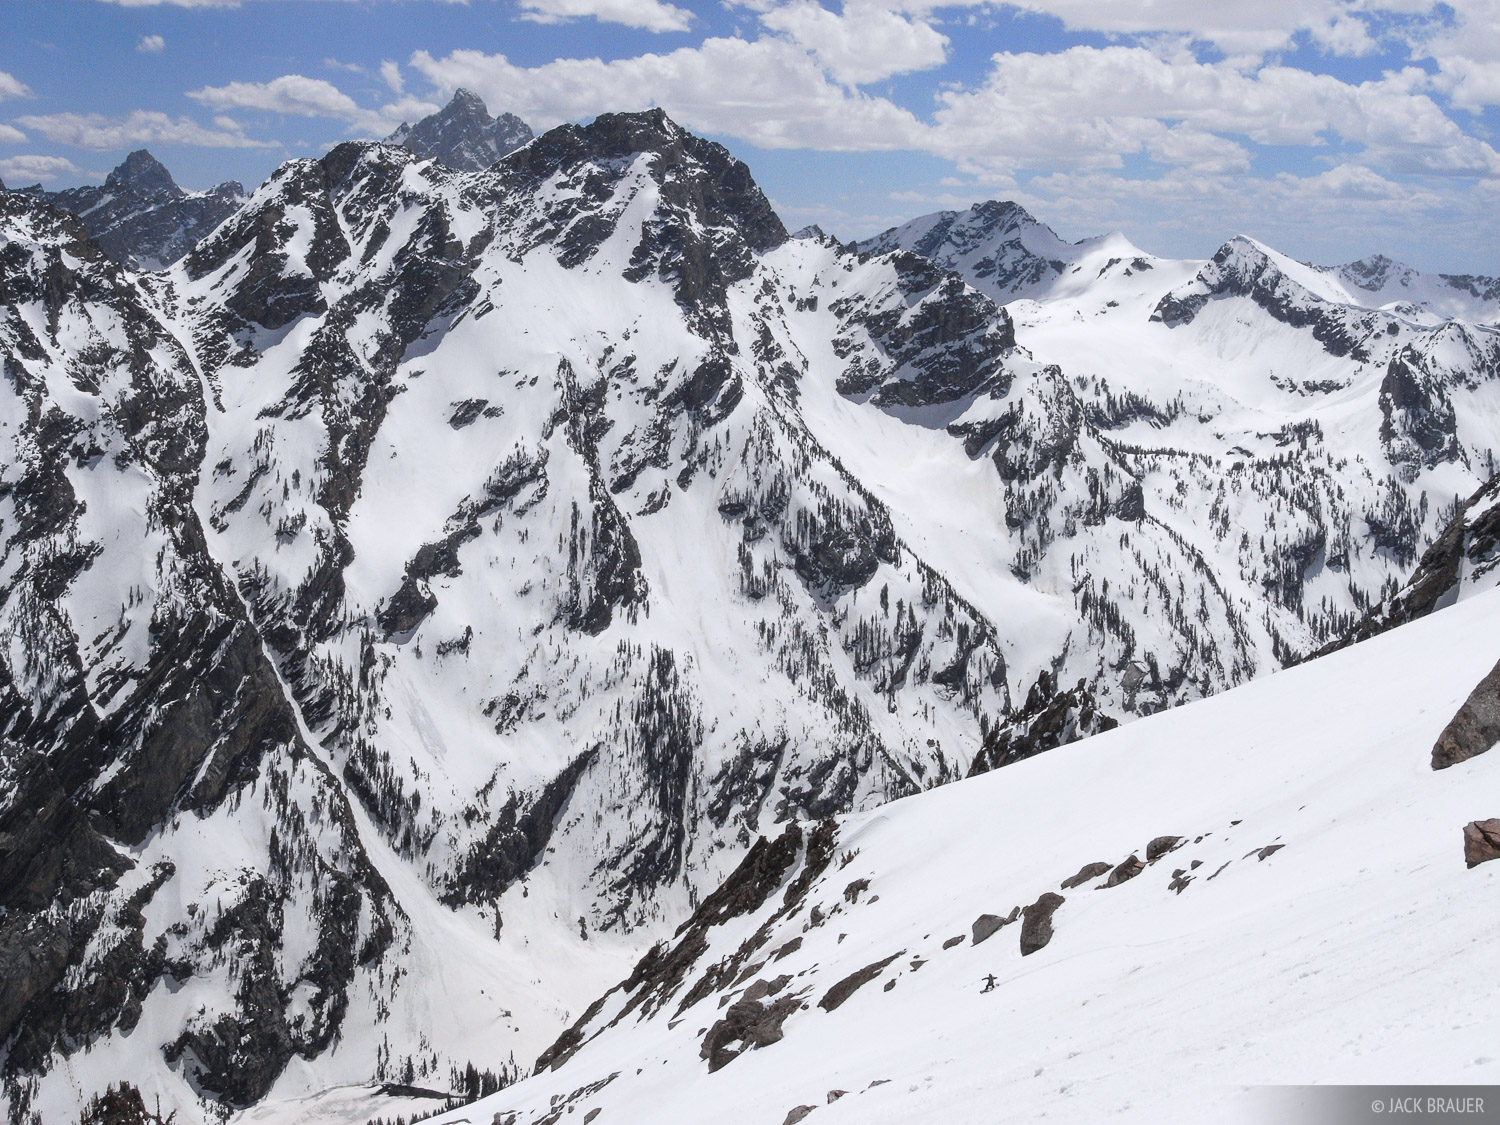 Darrell Miller snowboards down the long southern slopes of Mt. Moran, with a rugged Teton backdrop.